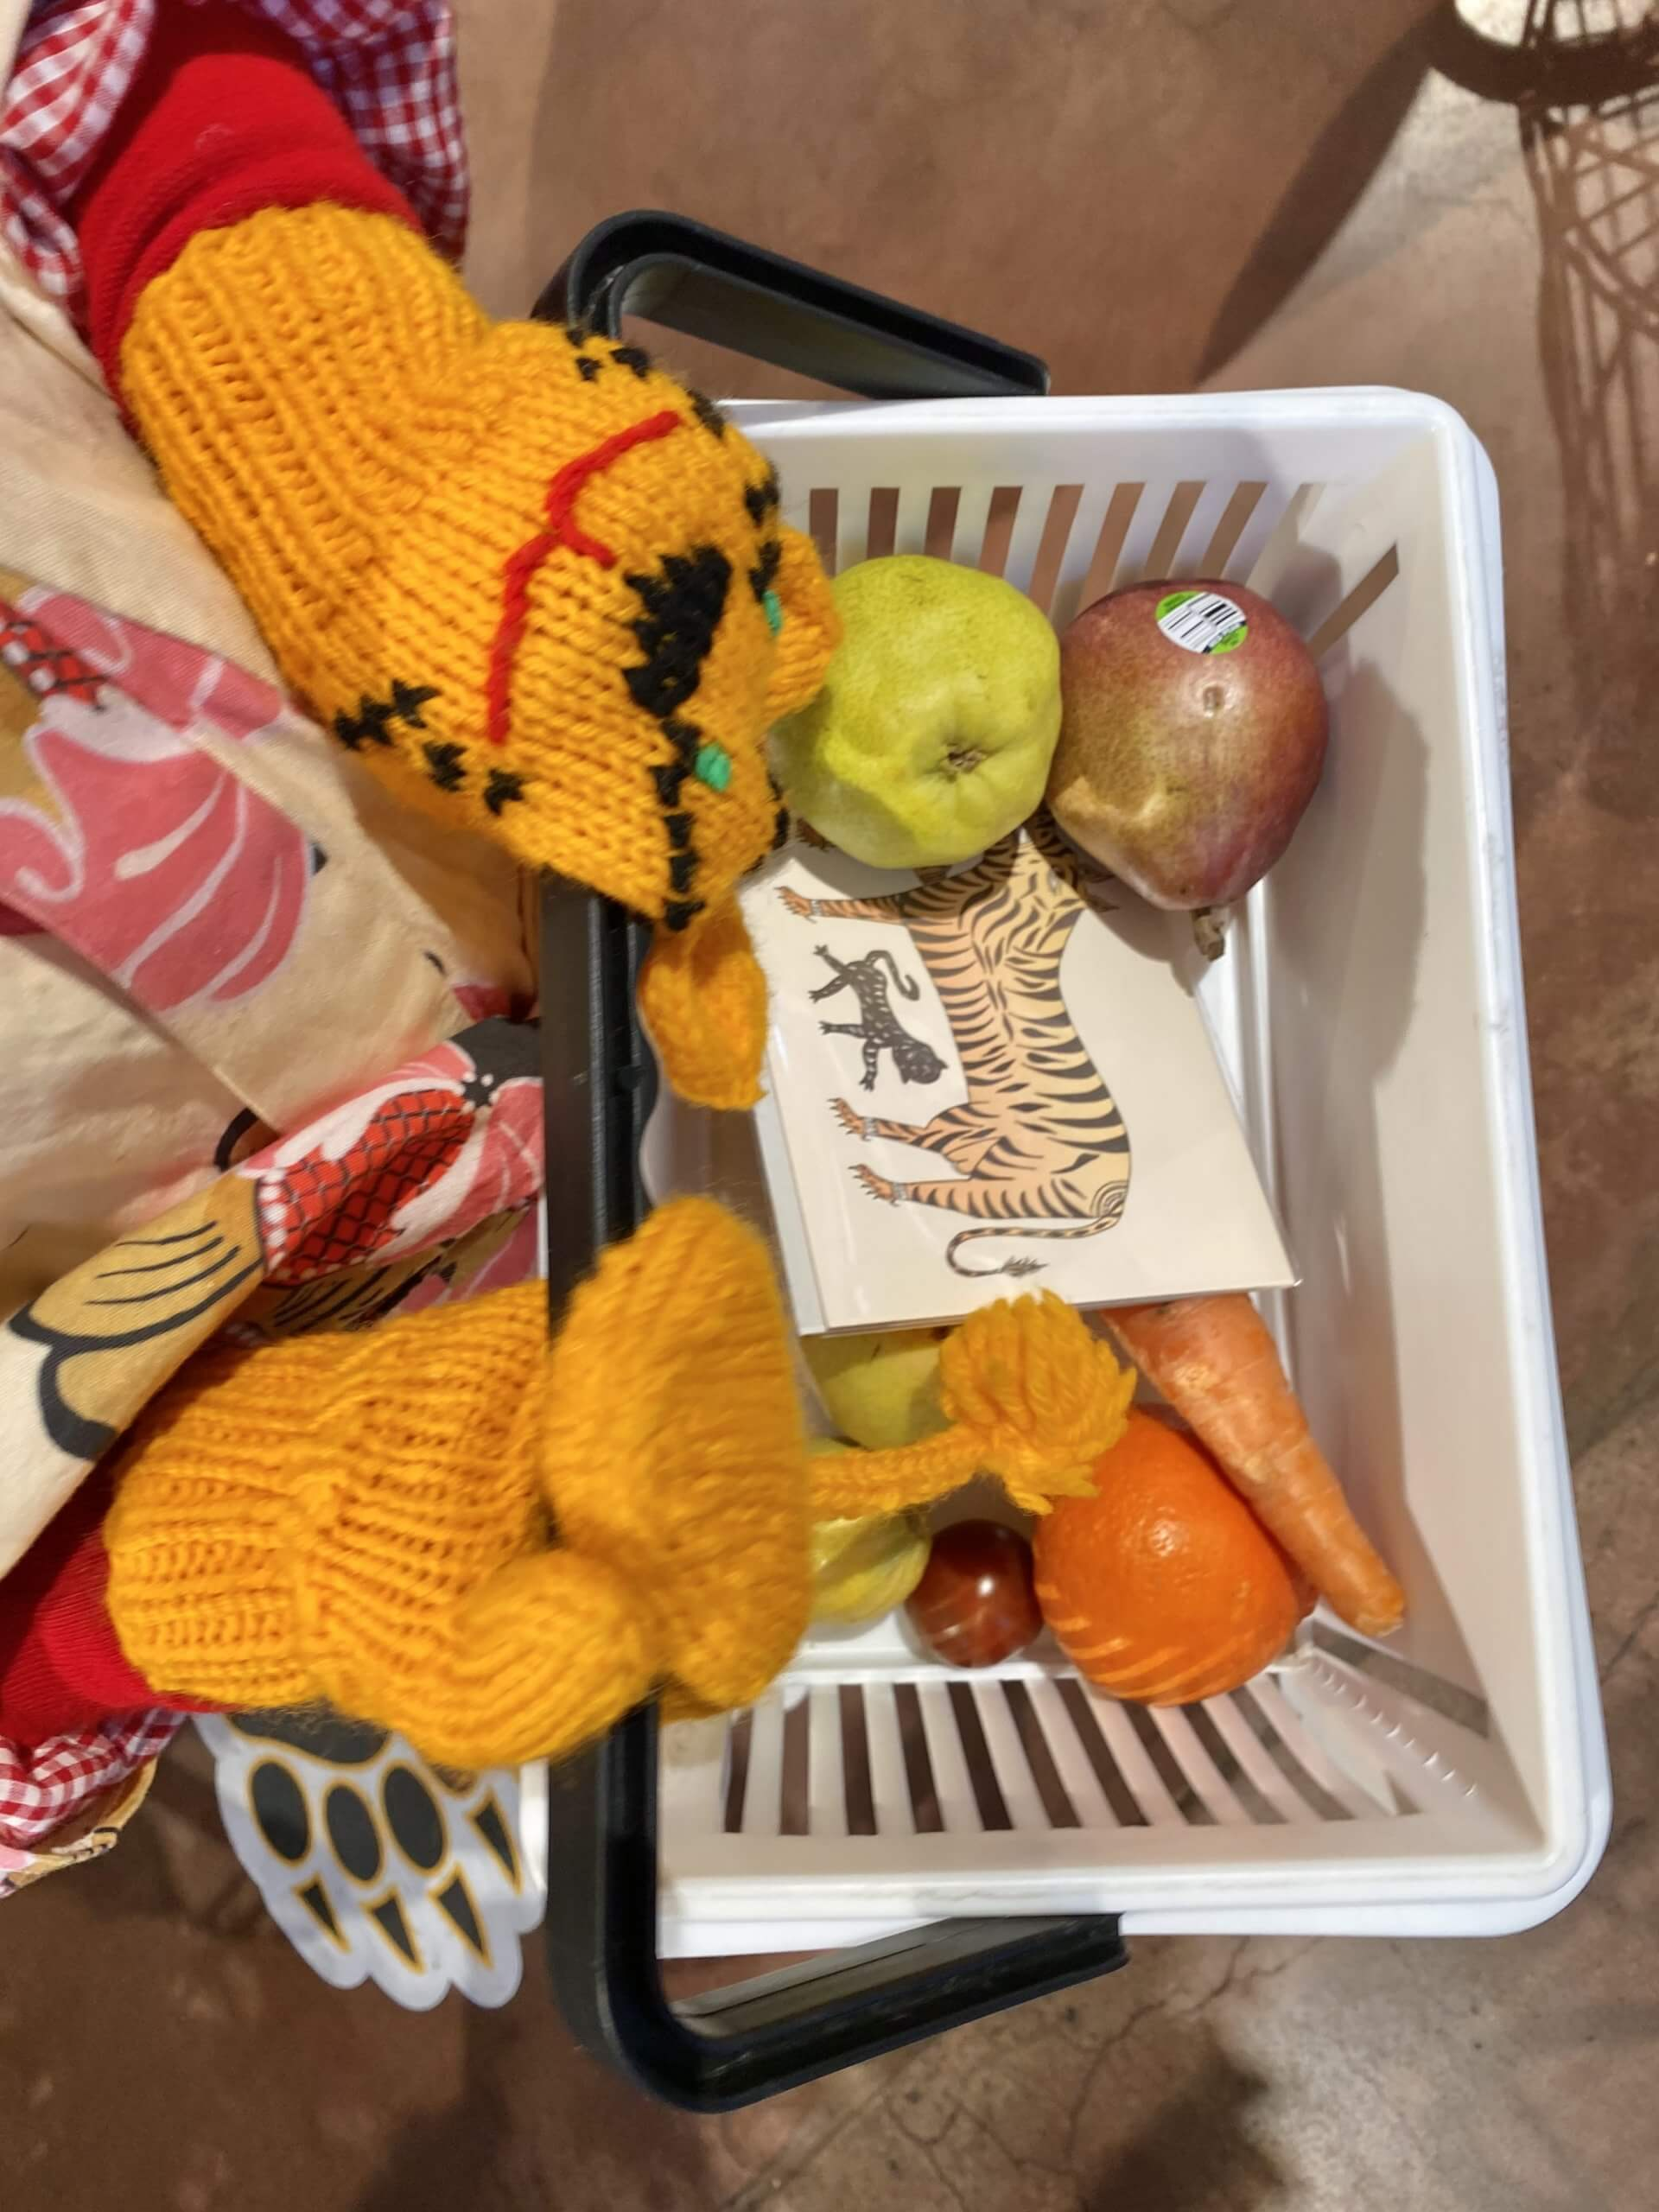 shopper wearing mittens and holding grocery basket